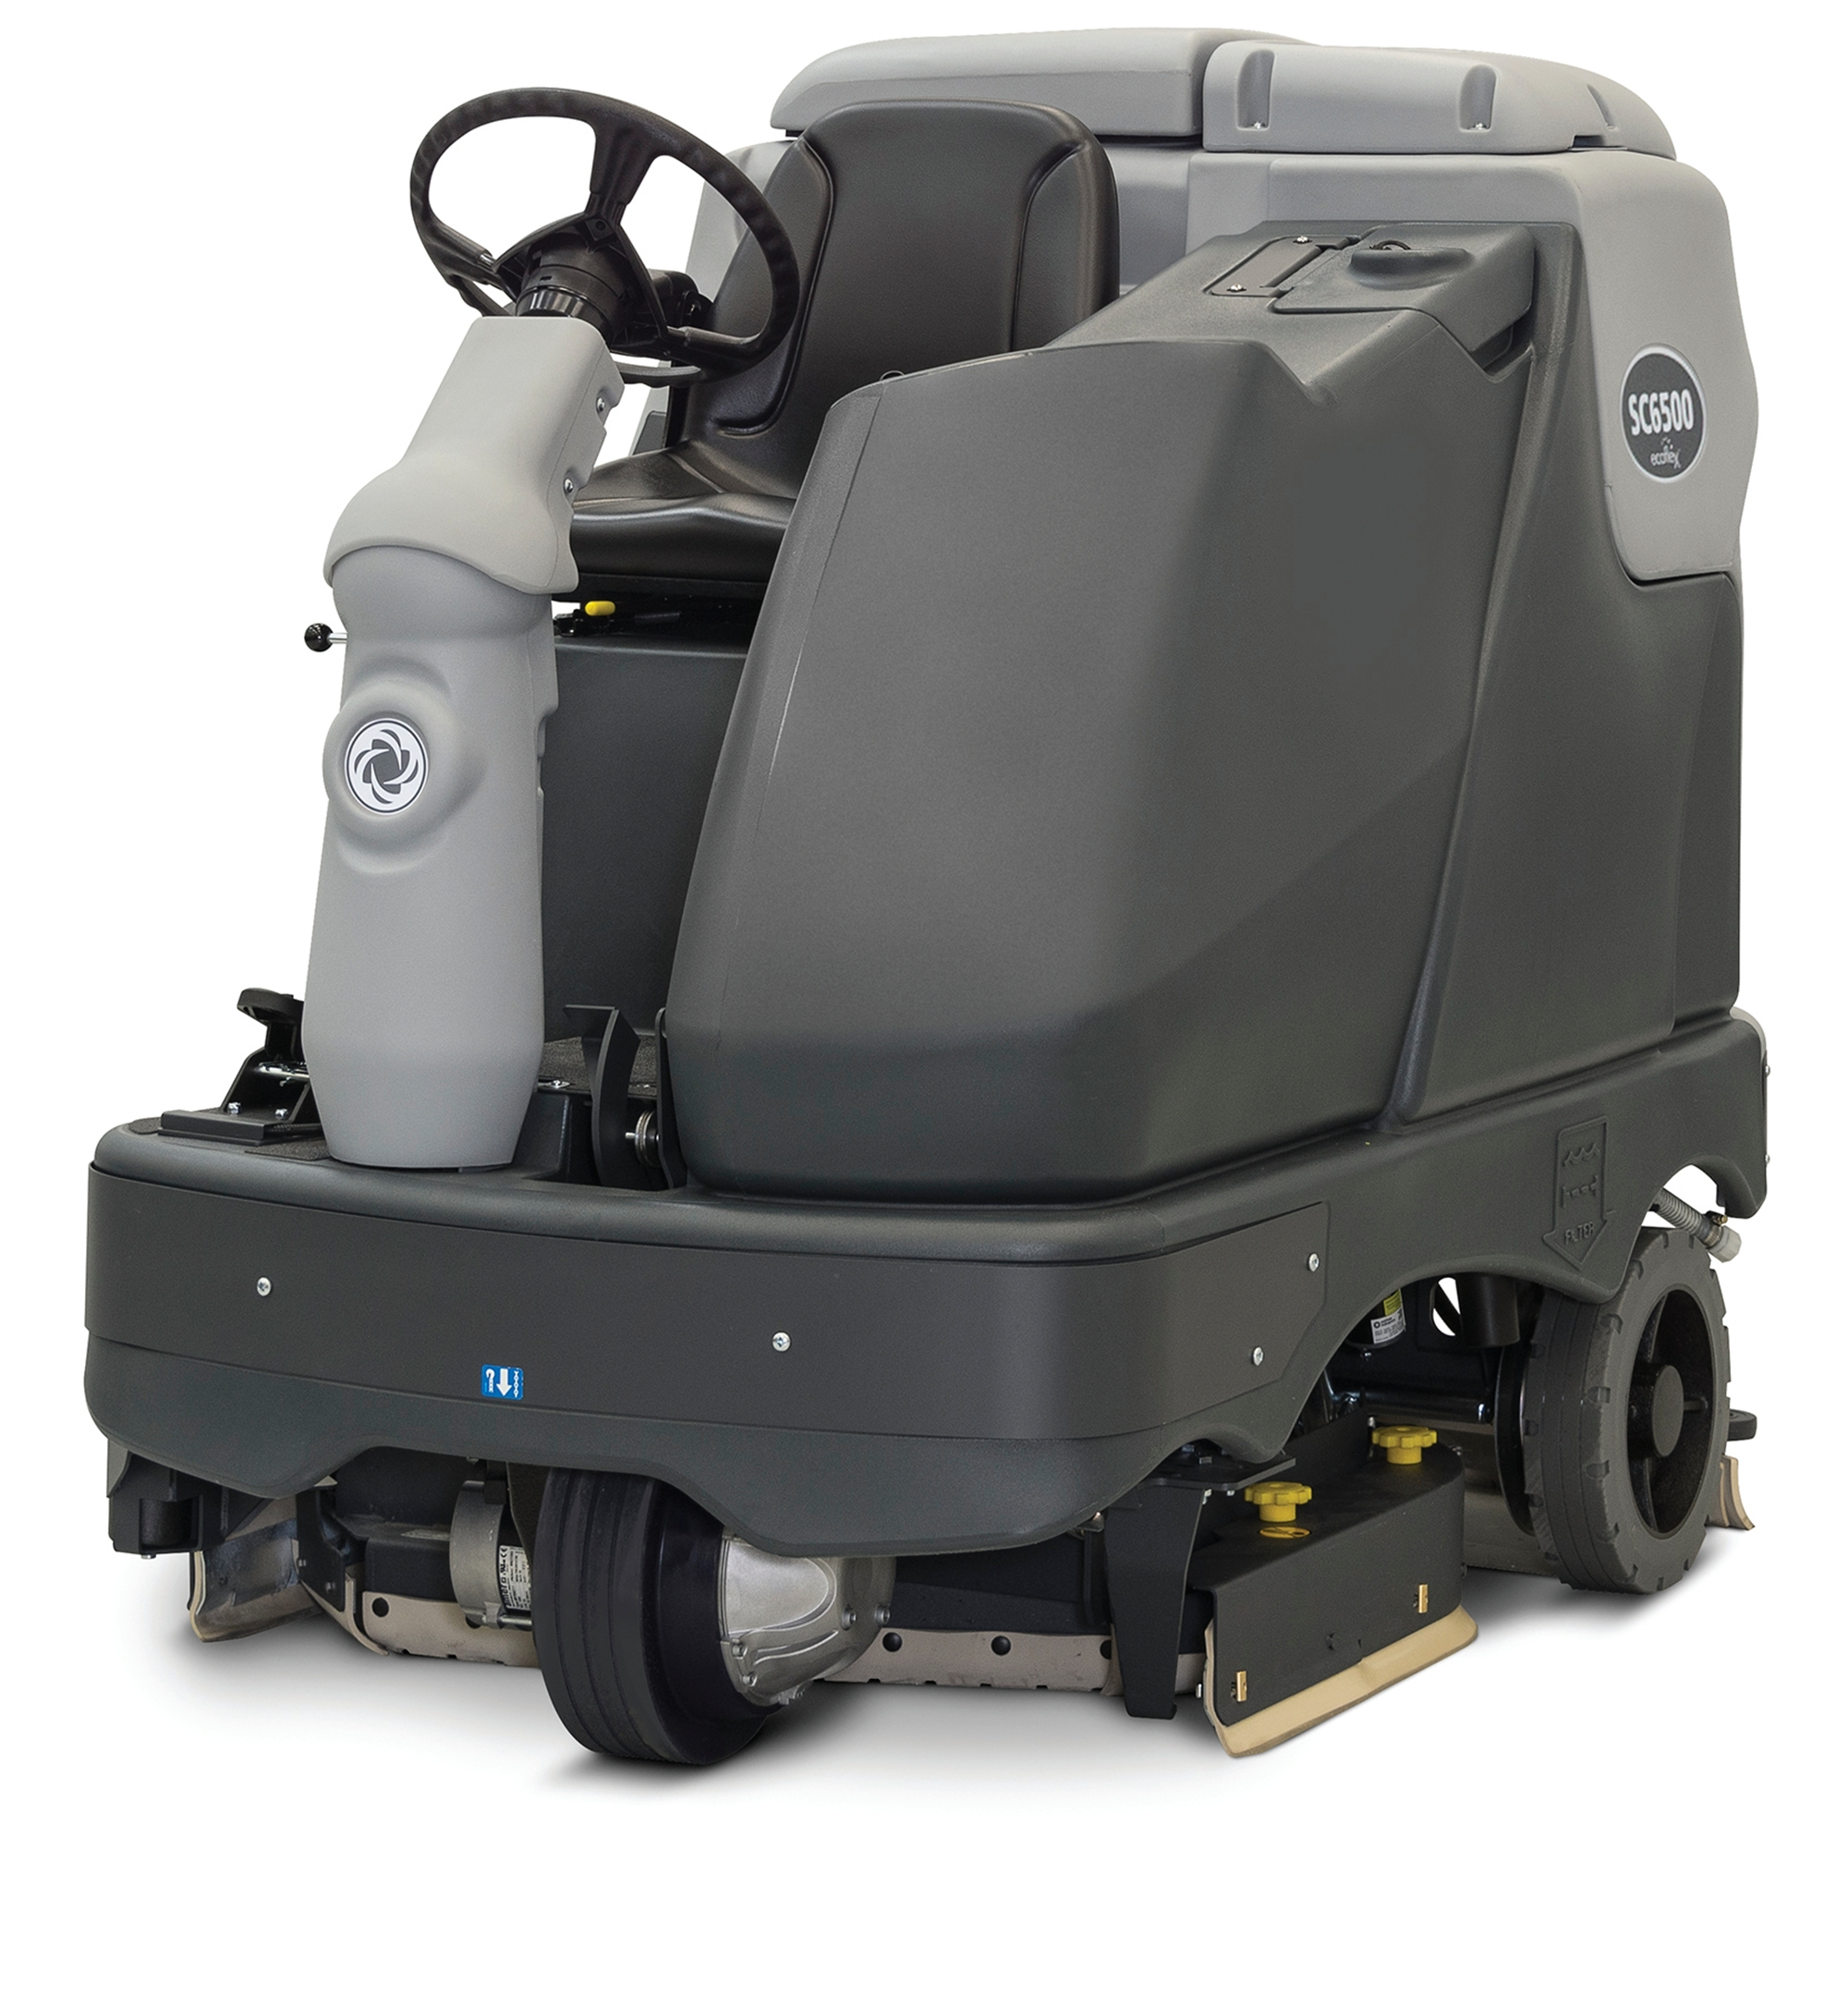 Product, Floor Cleaning, Scrubbers, Rider Scrubbers, Nilfisk, SC6500 40C 450C6 RO